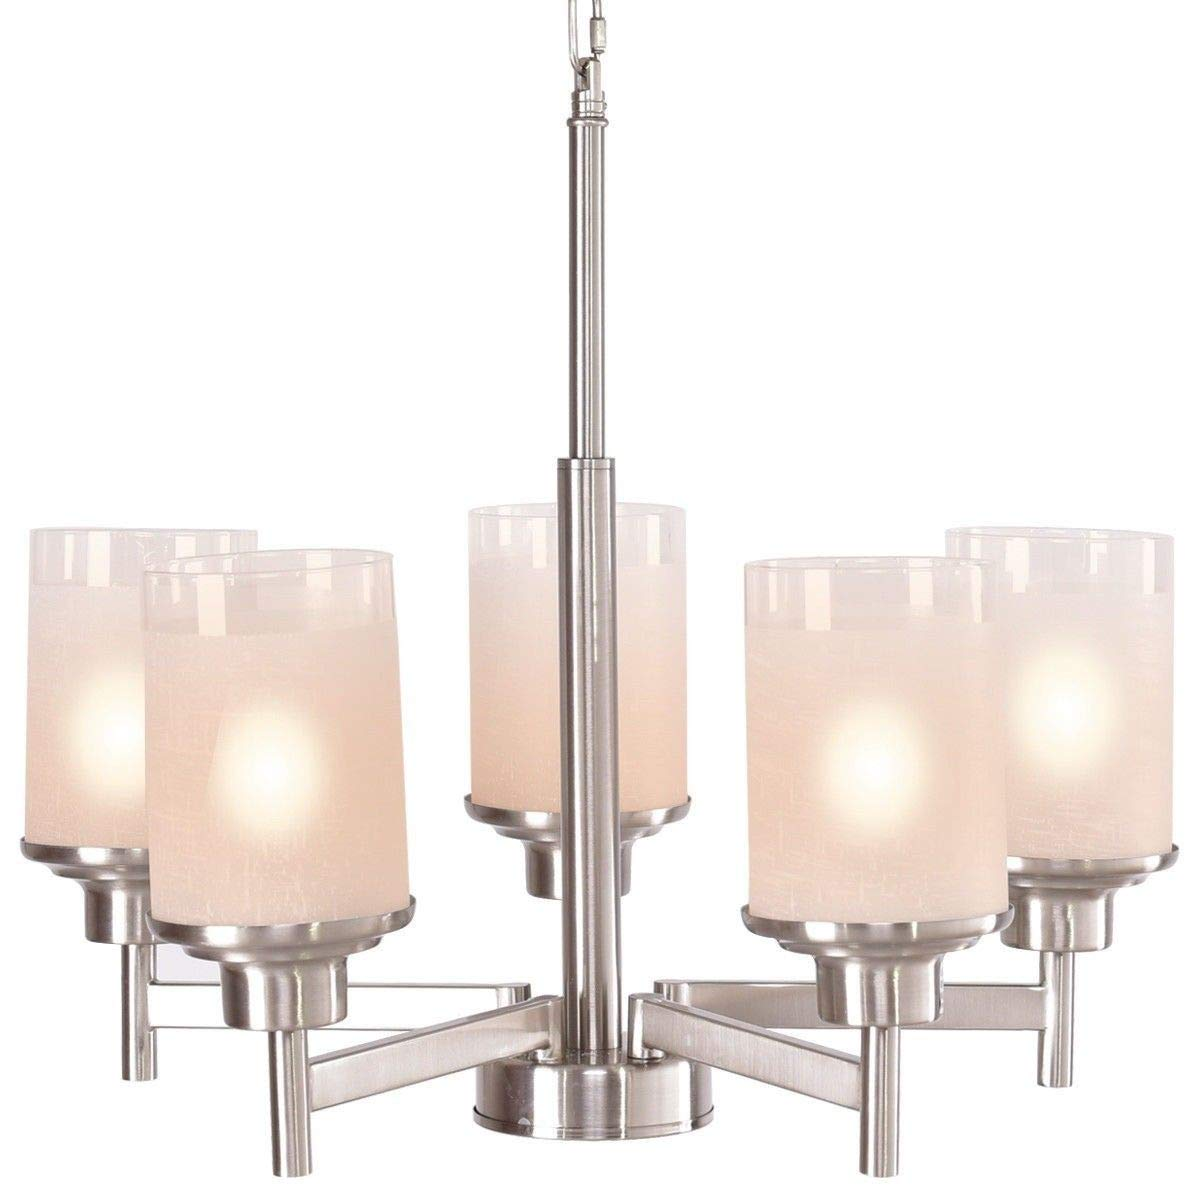 TimmyHouse Ceiling 5-Light Lighting Fixture Pendent Chandelier Decoration Home Kitchen US